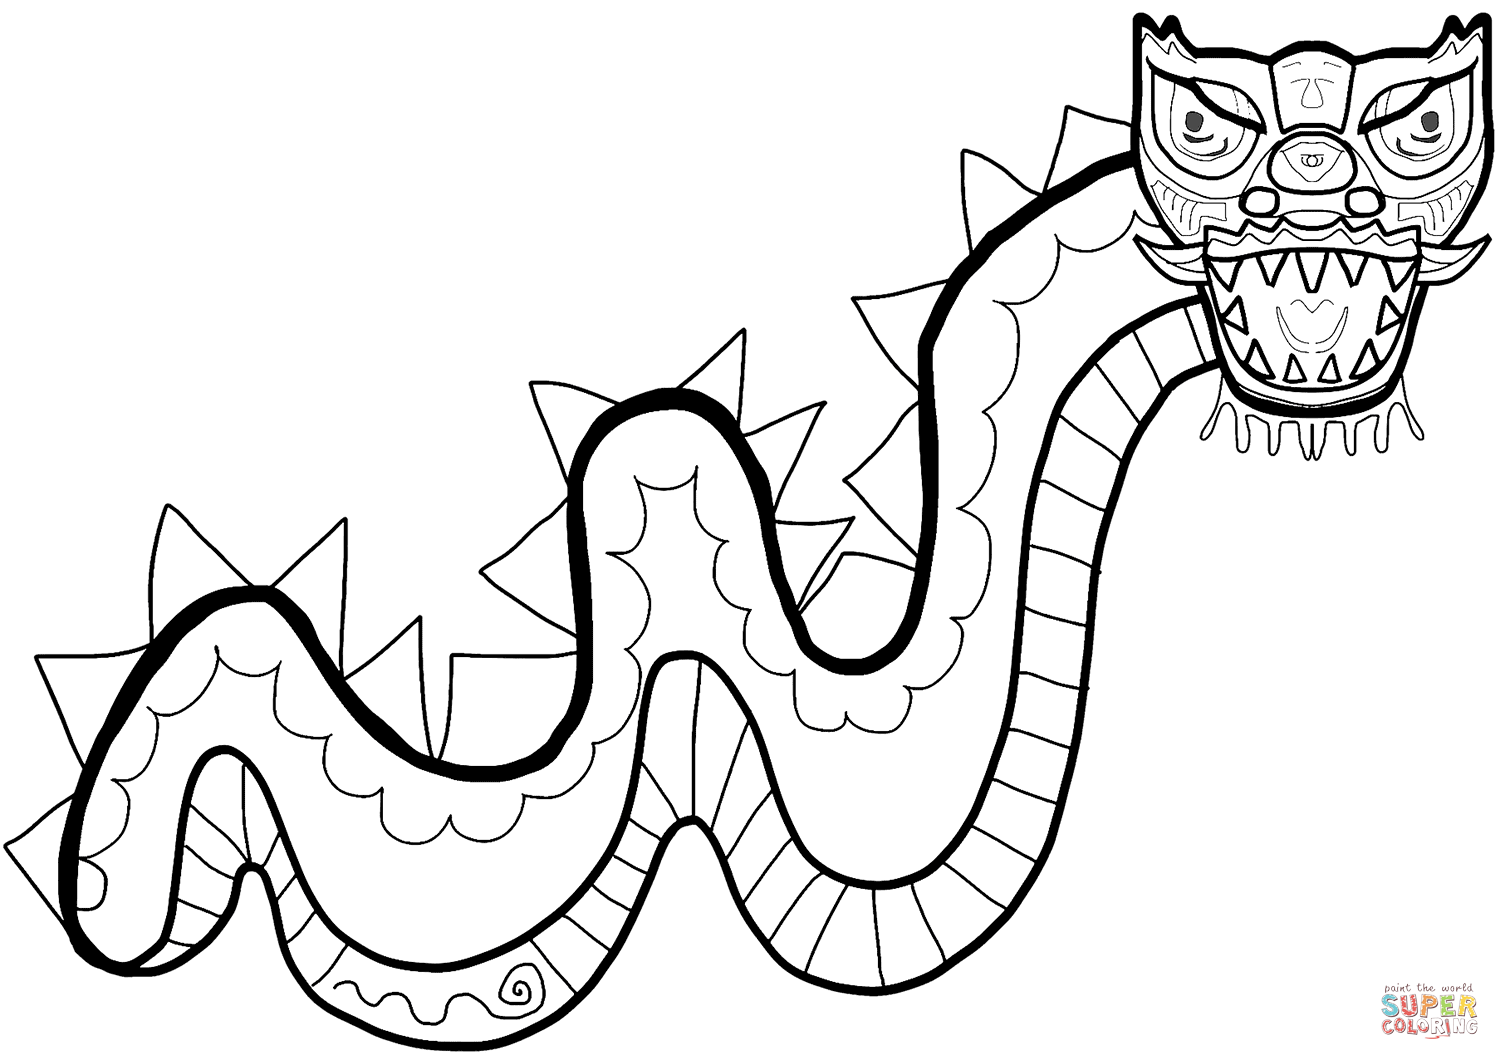 Chinese New Year Coloring Pages - Coloring Home